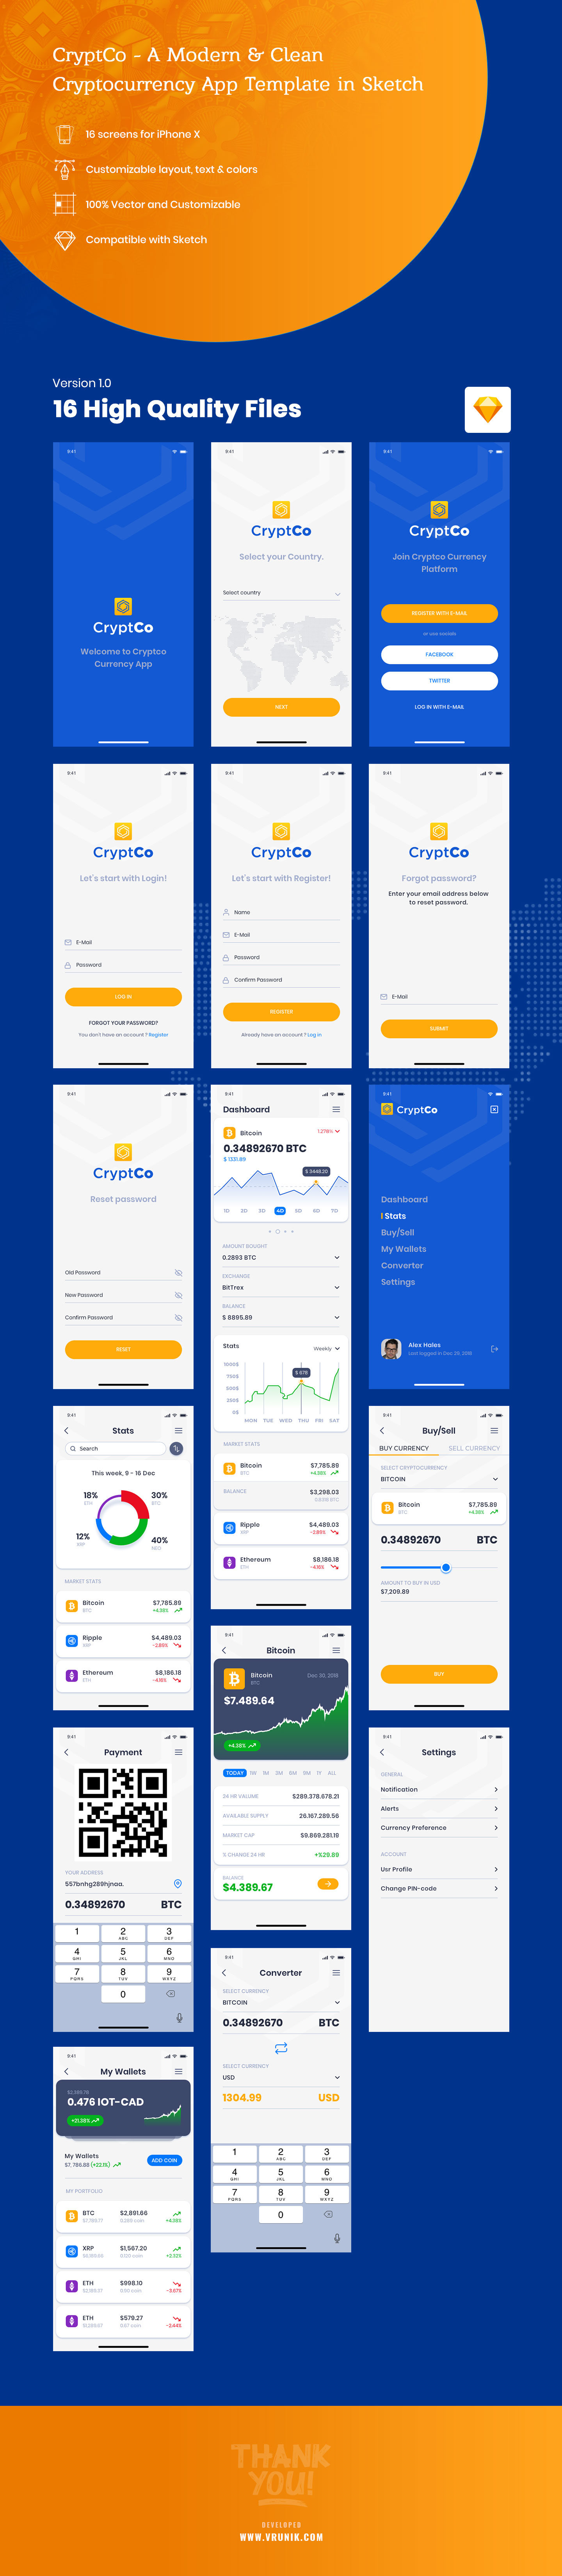 CryptCo - A Modern & Clean Cryptocurrency App Template in Sketch - 1